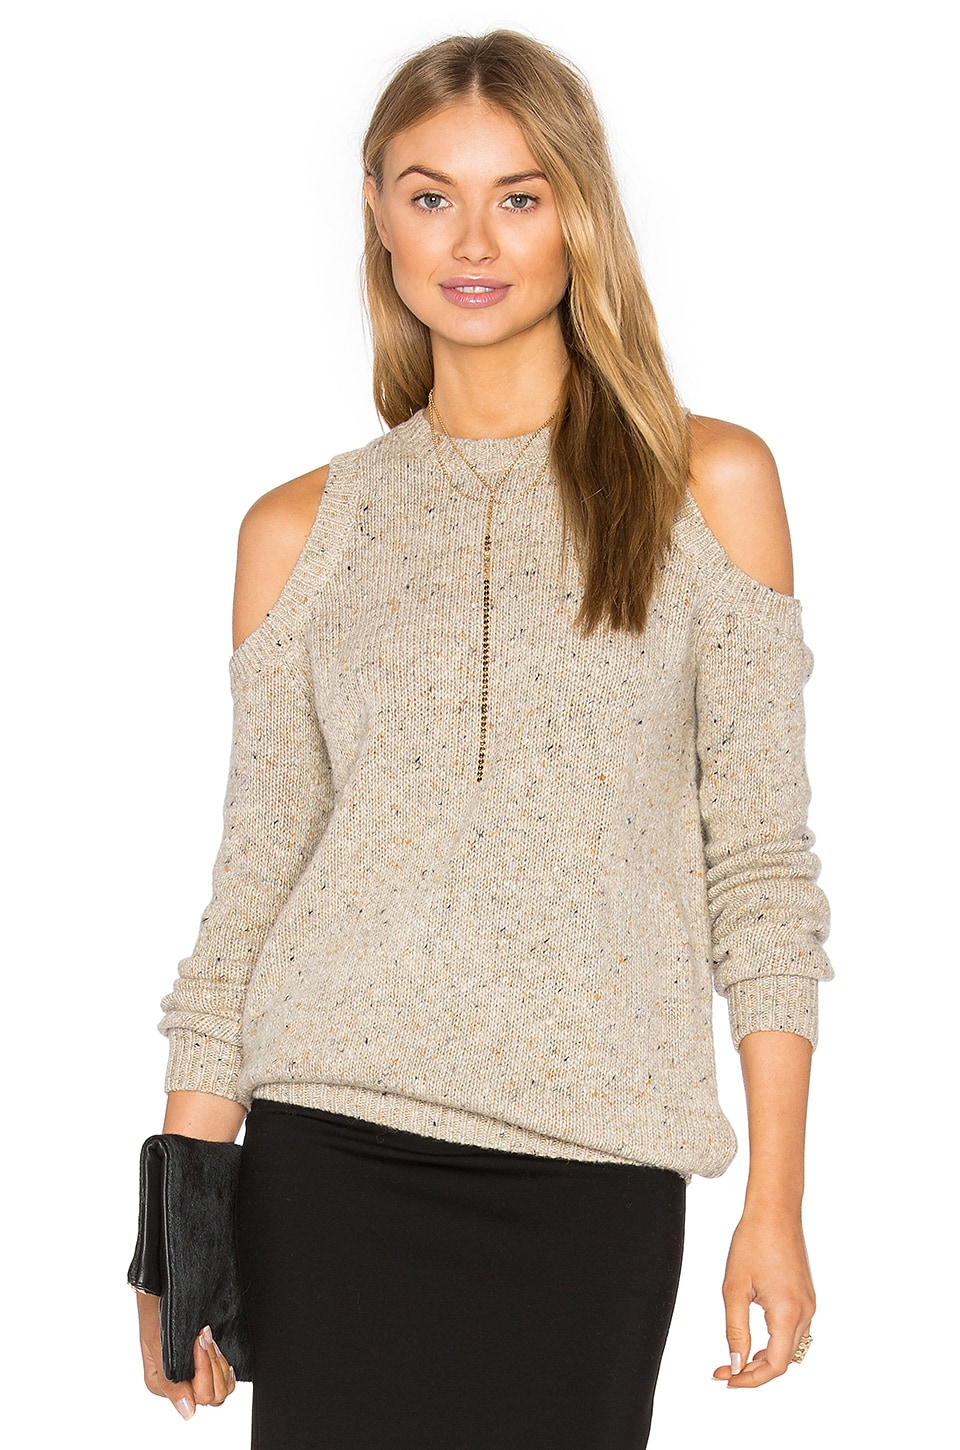 Rebecca Minkoff Chapter Sweater in Oatcake Multi